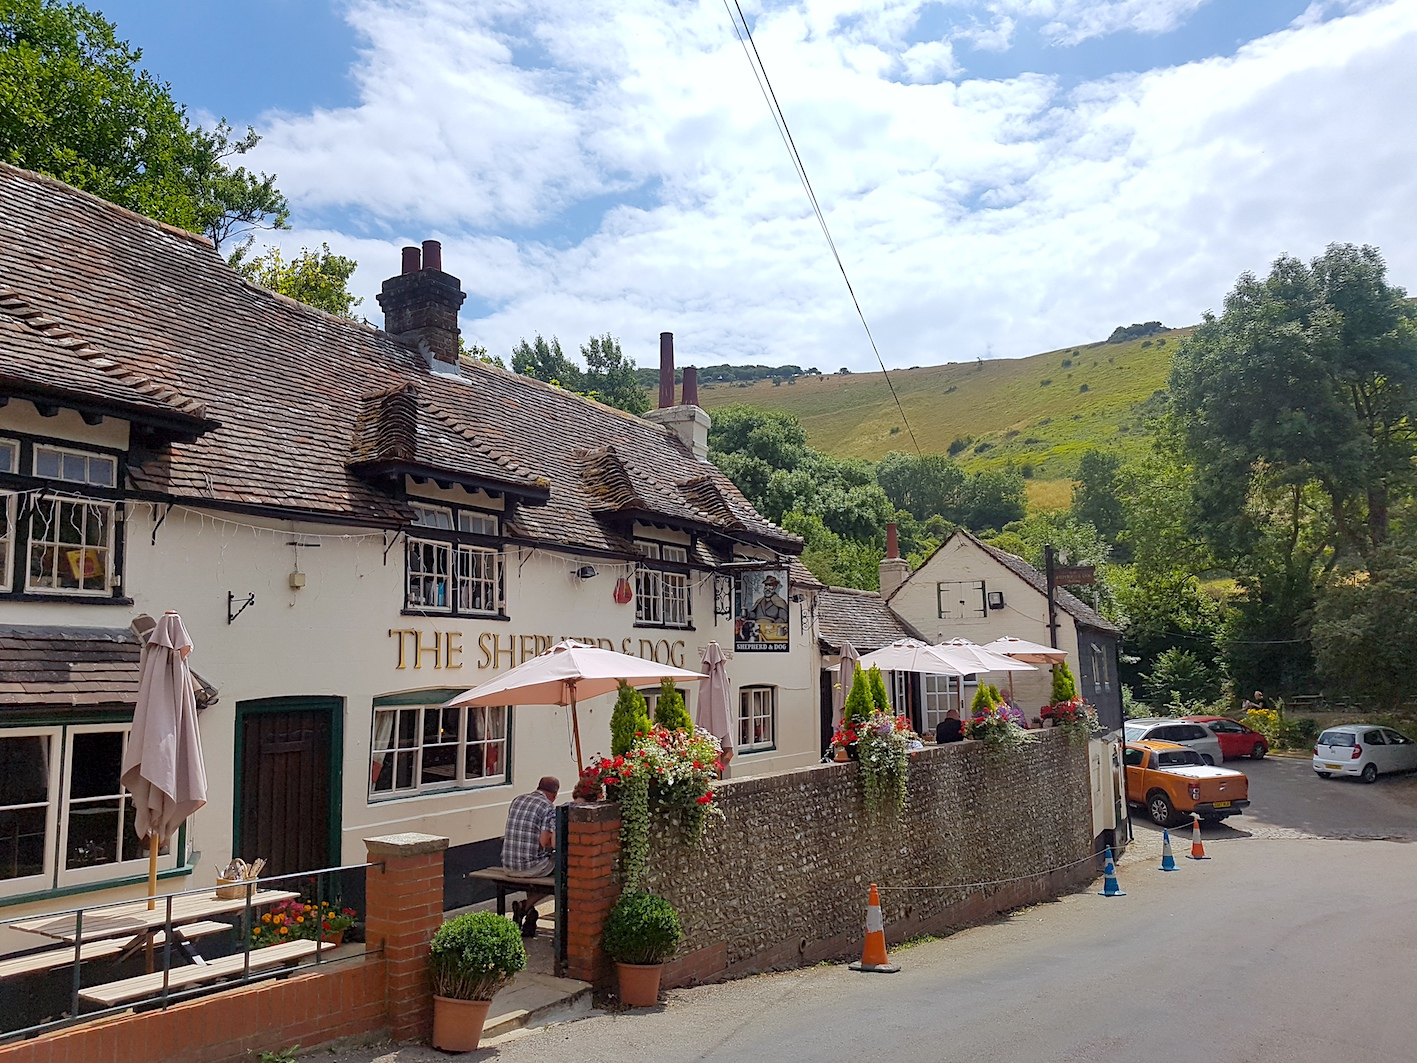 The Shepherd & Dog, Fulking – A Review